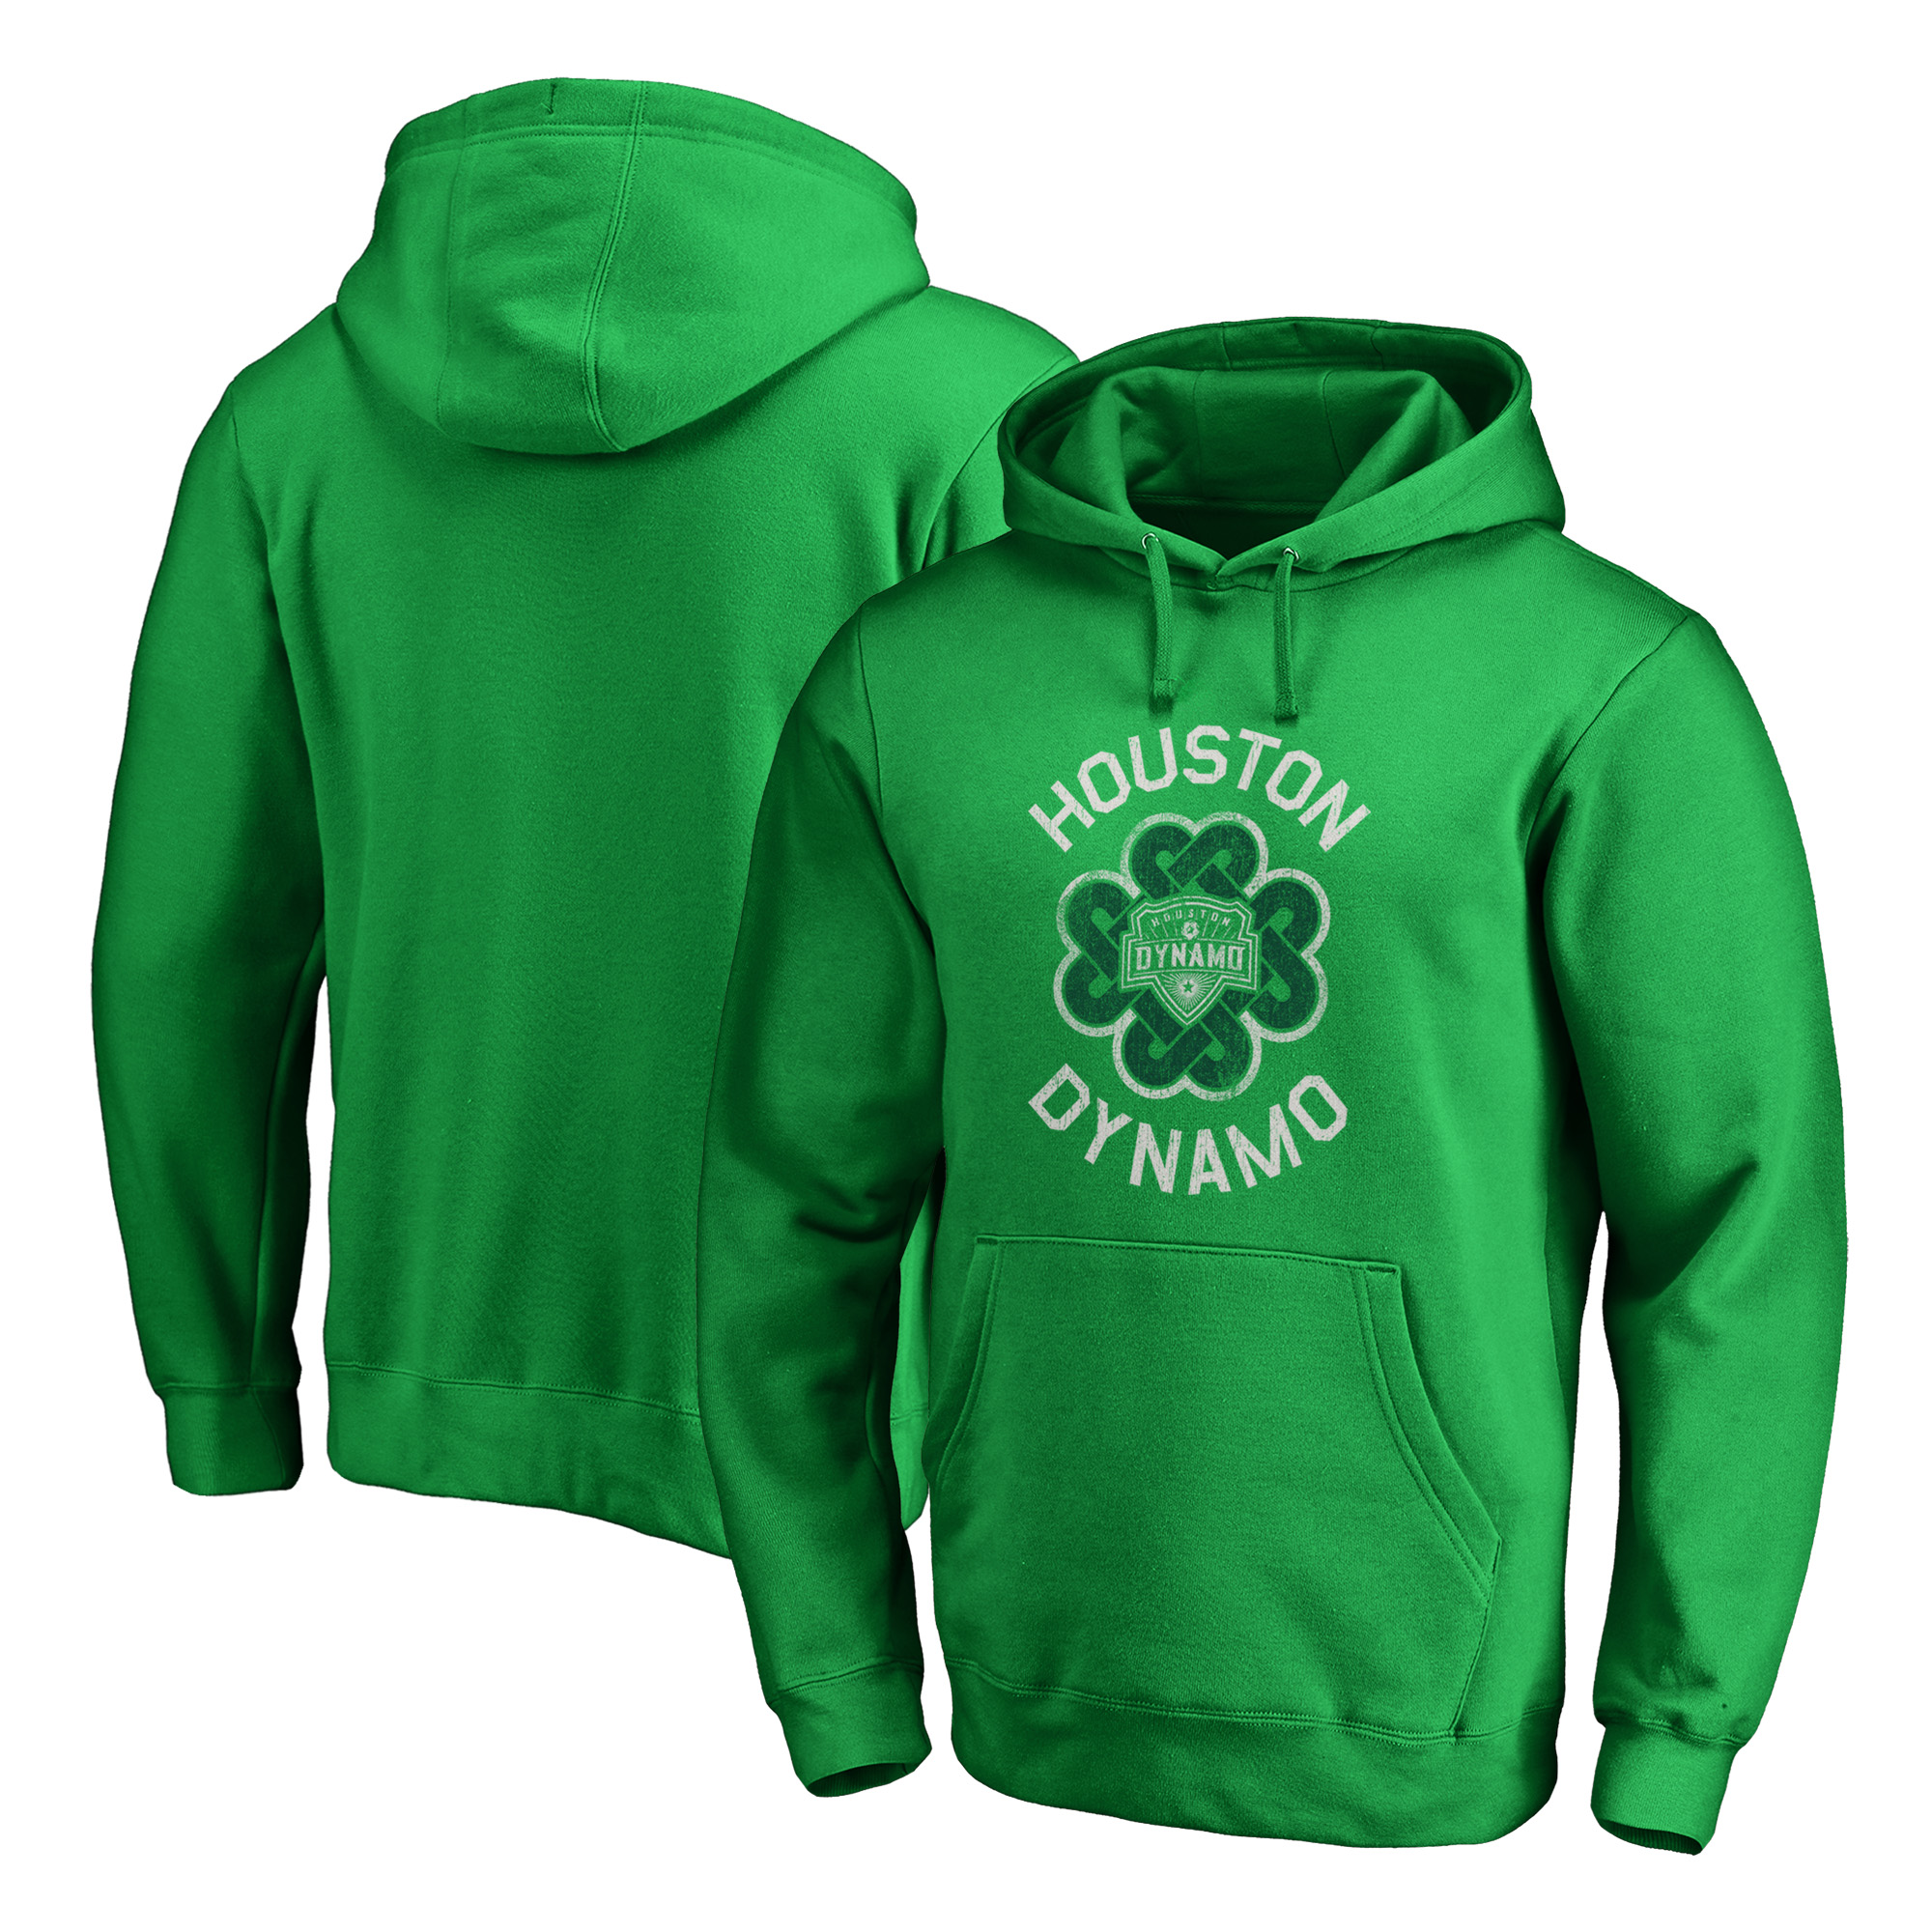 Houston Dynamo Fanatics Branded St. Patrick's Day Luck Tradition Pullover Hoodie - Kelly Green